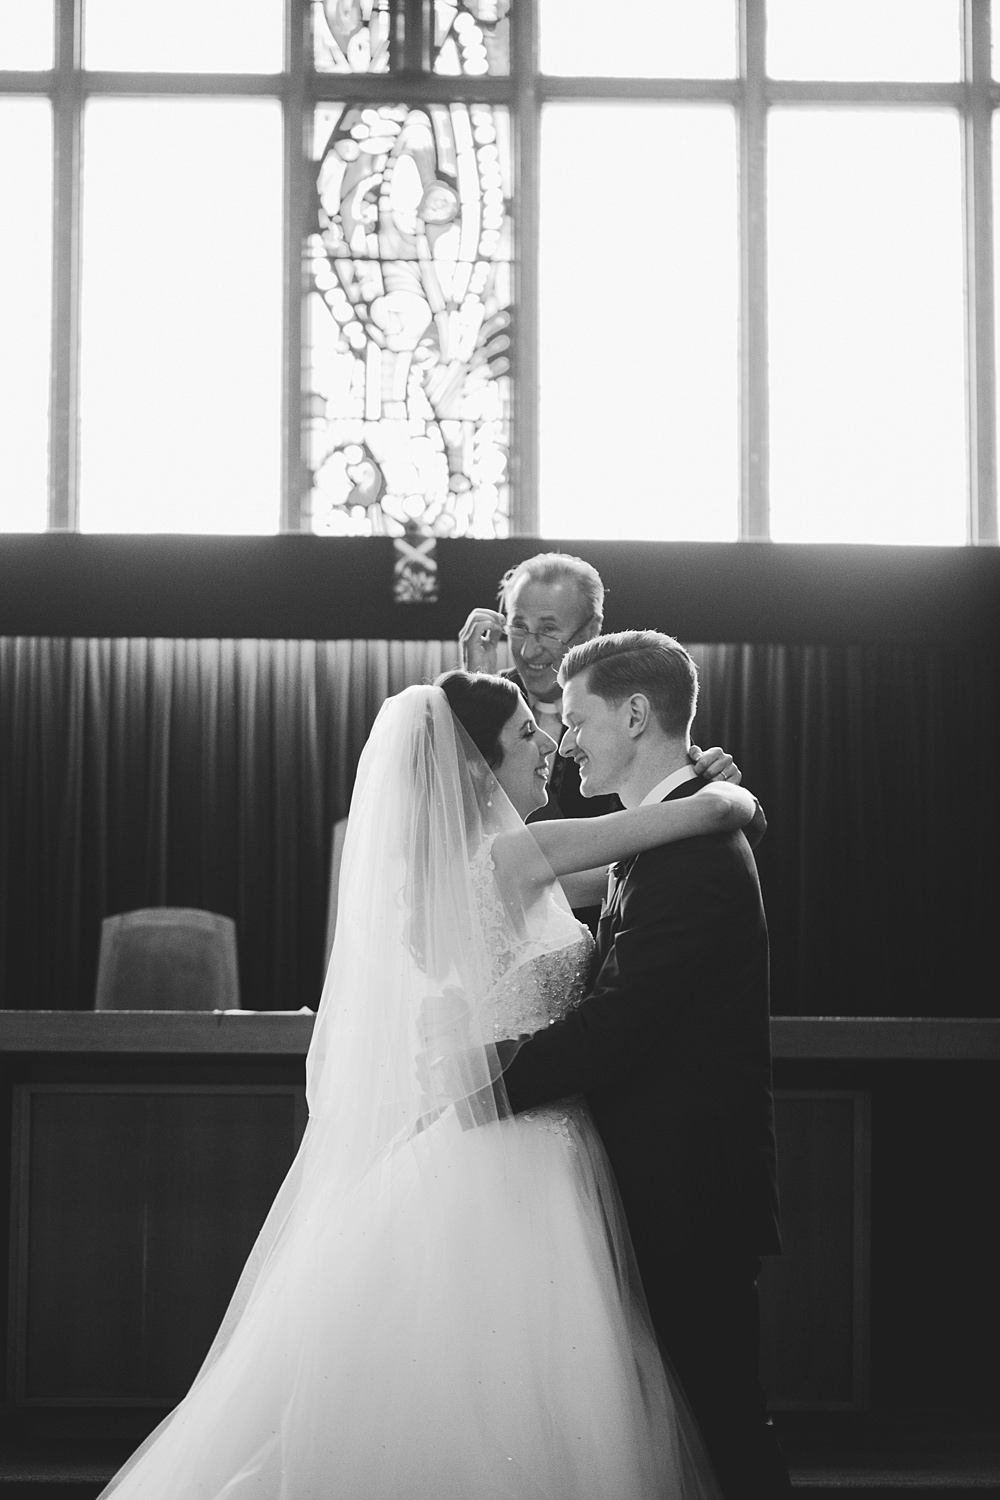 wedding-newton-mearns-glenbervie-26-5